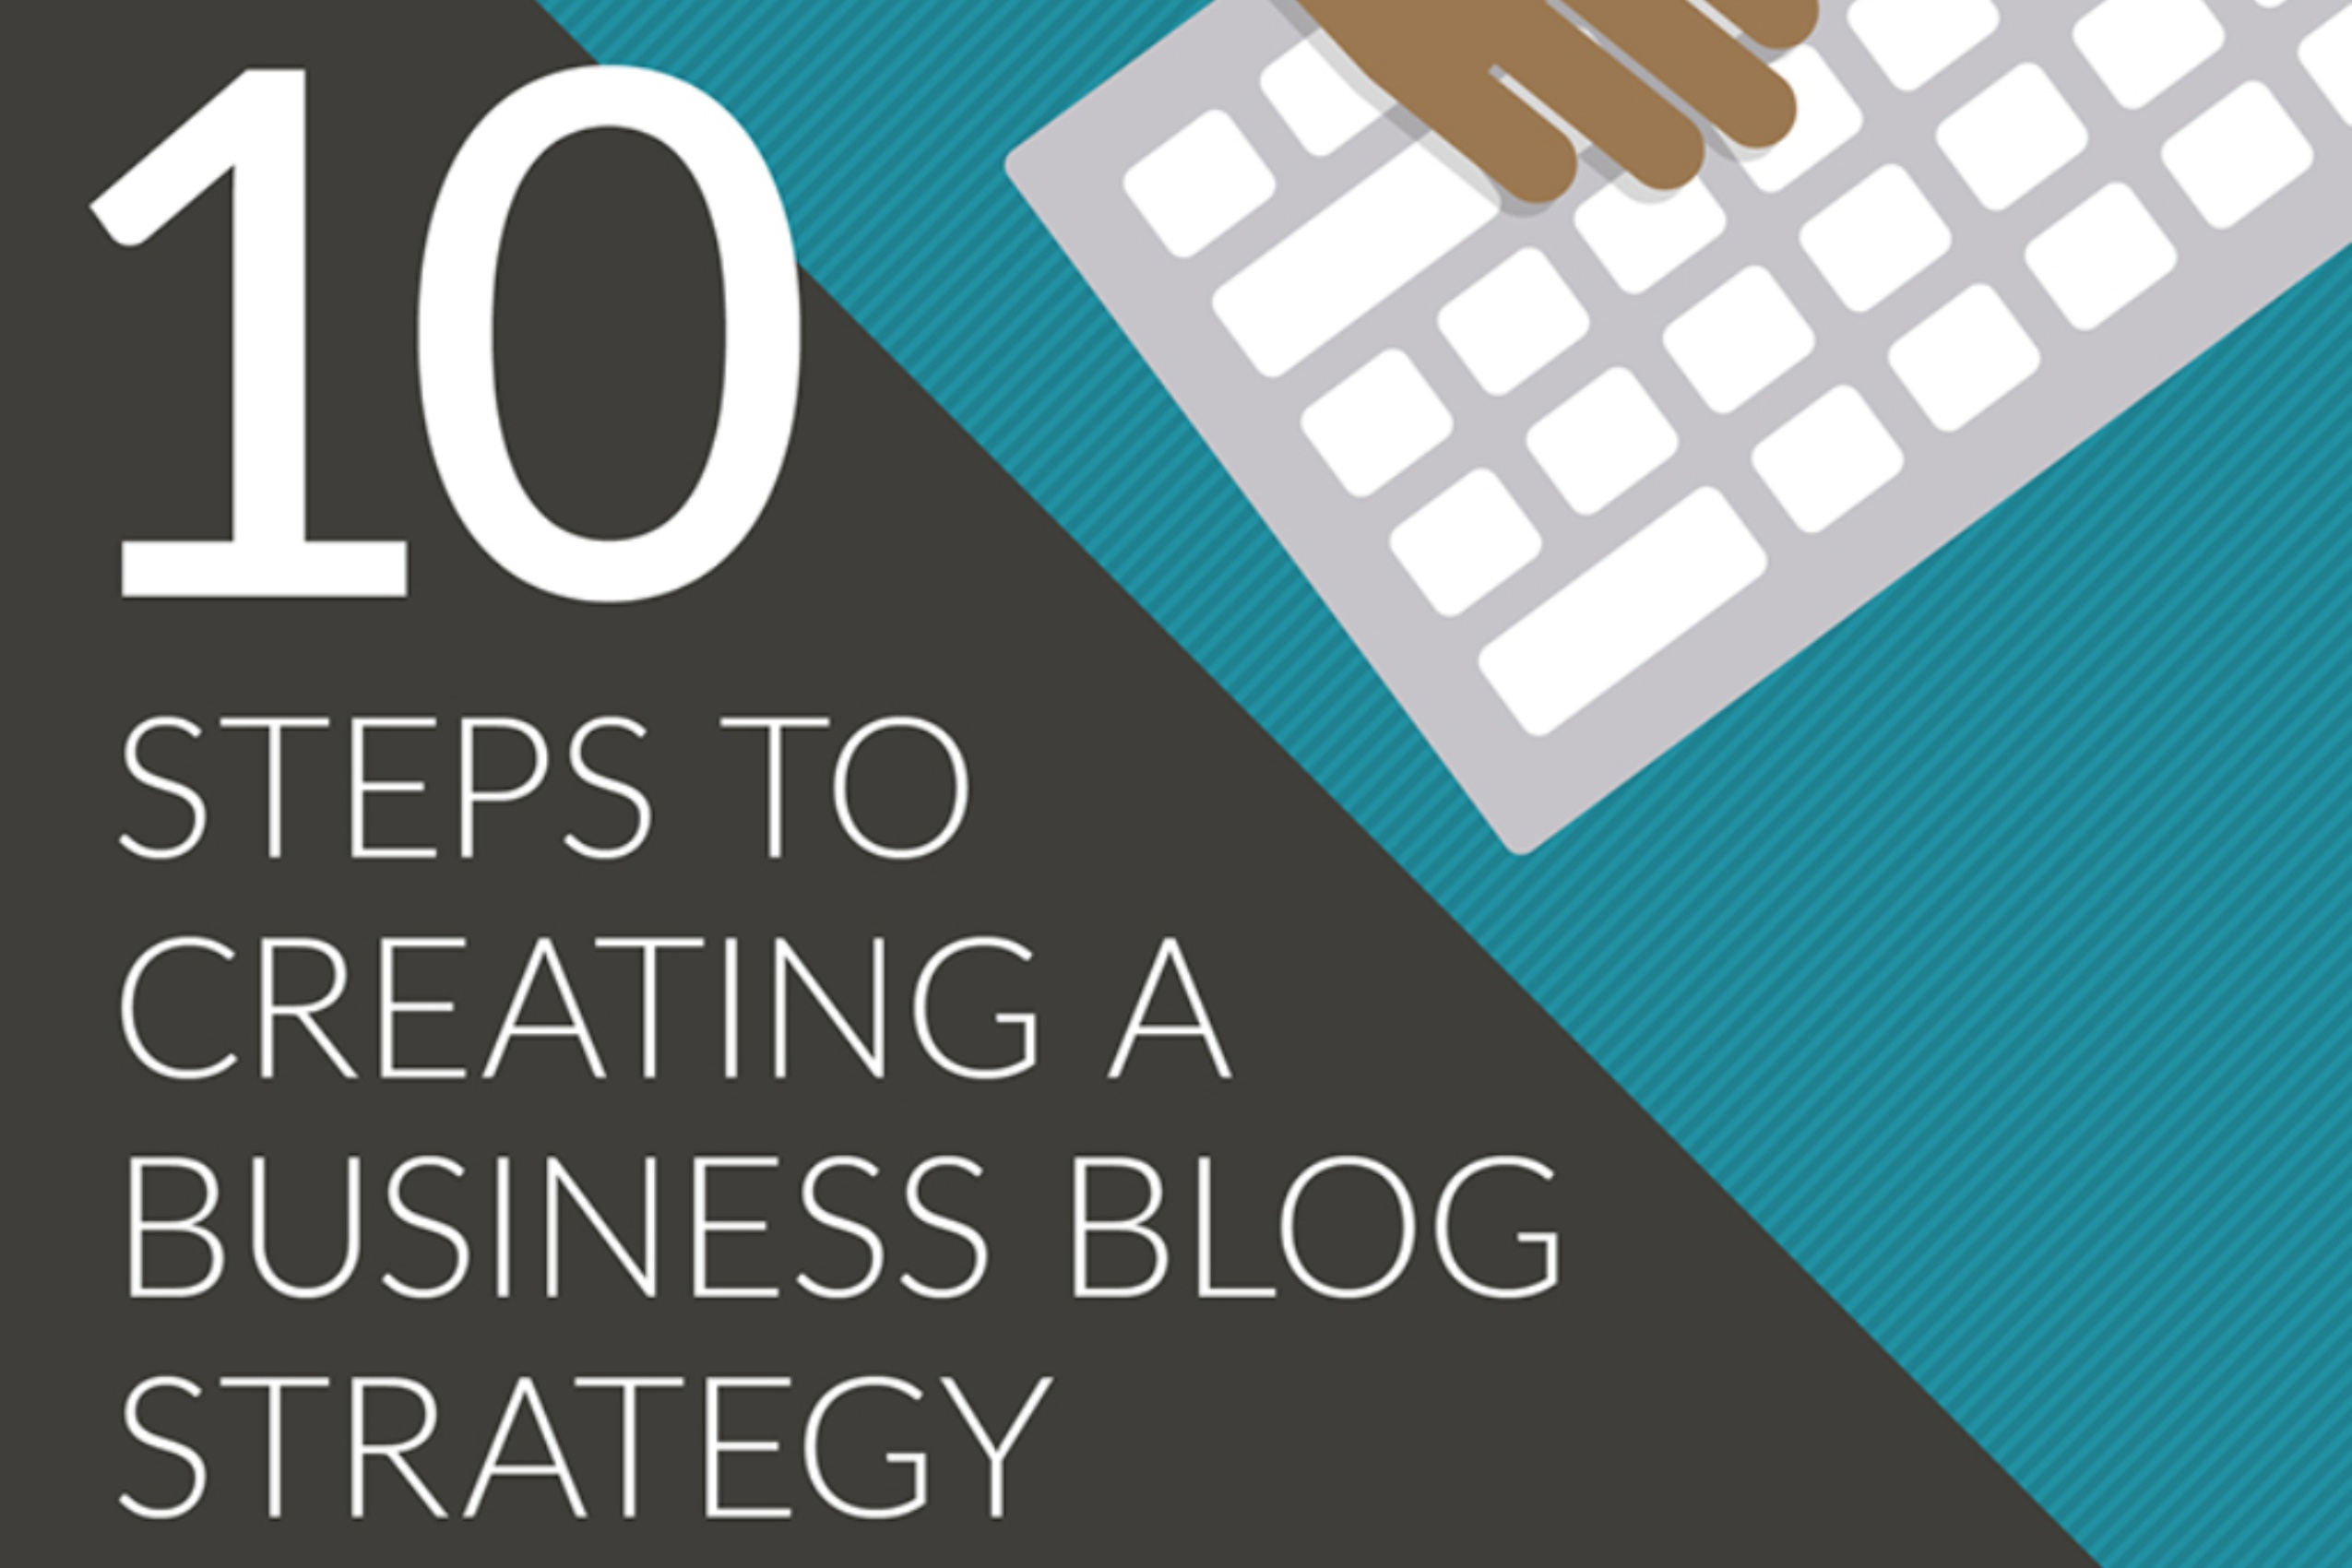 10 Steps to Creating A Business Blog Strategy